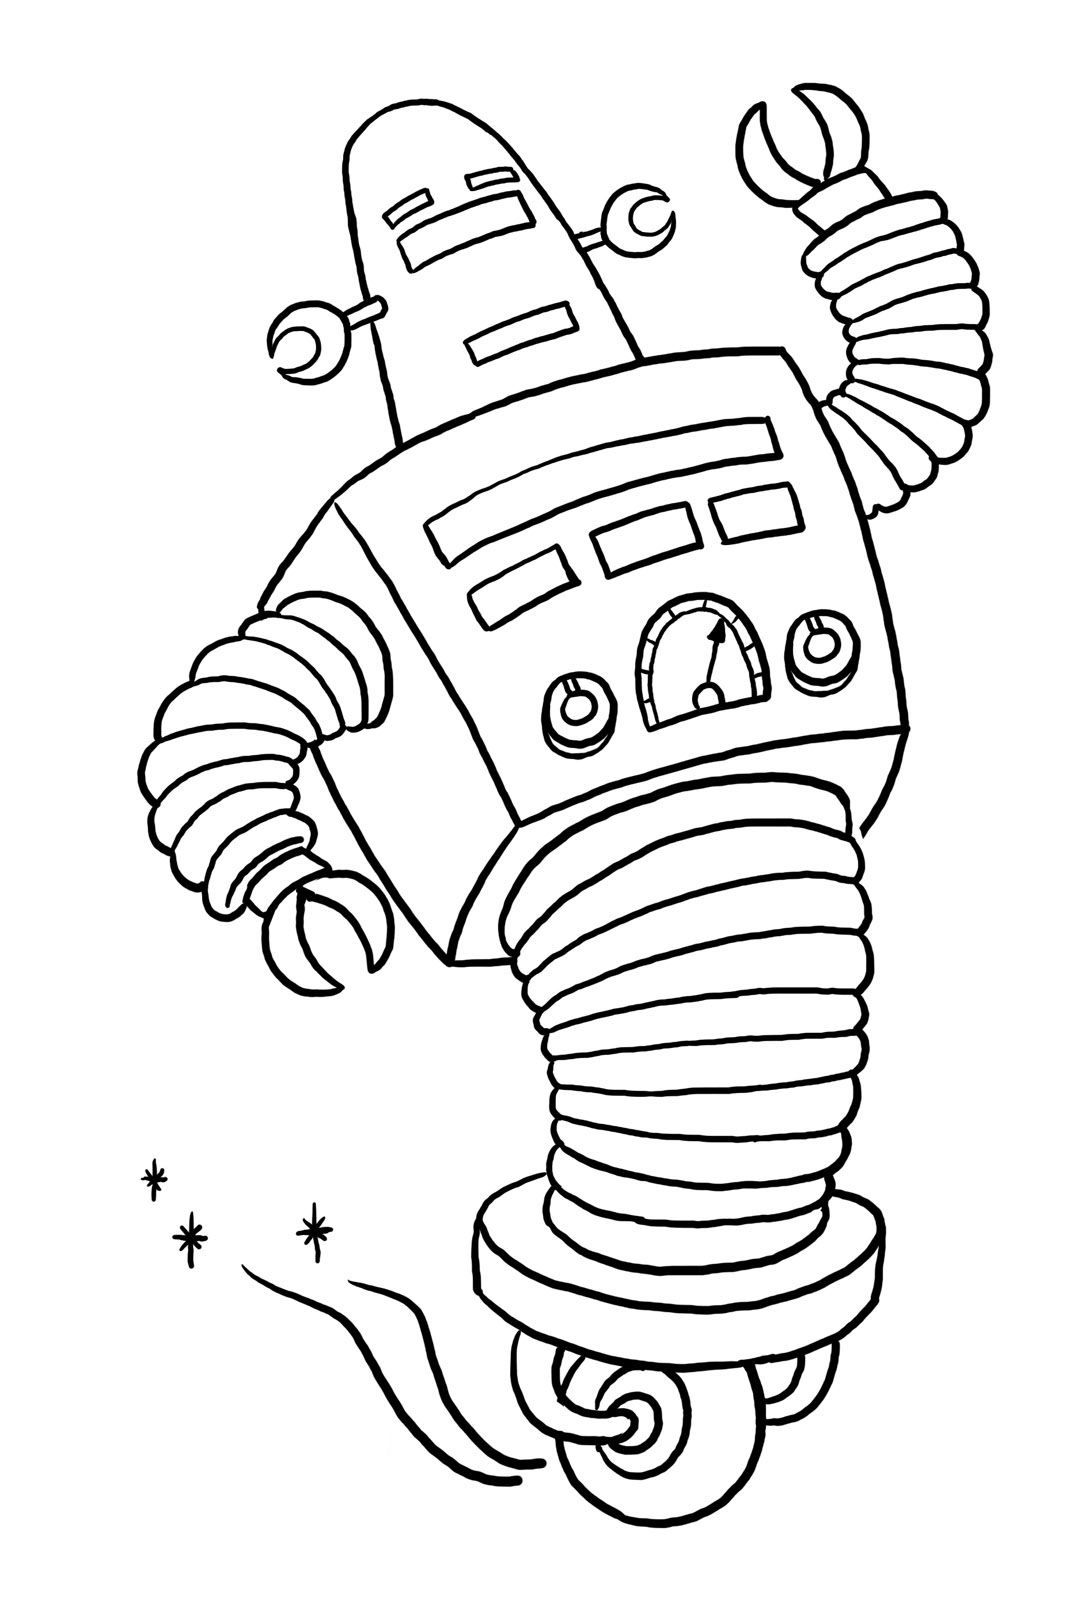 Robots To Color For Children Robots Kids Coloring Pages